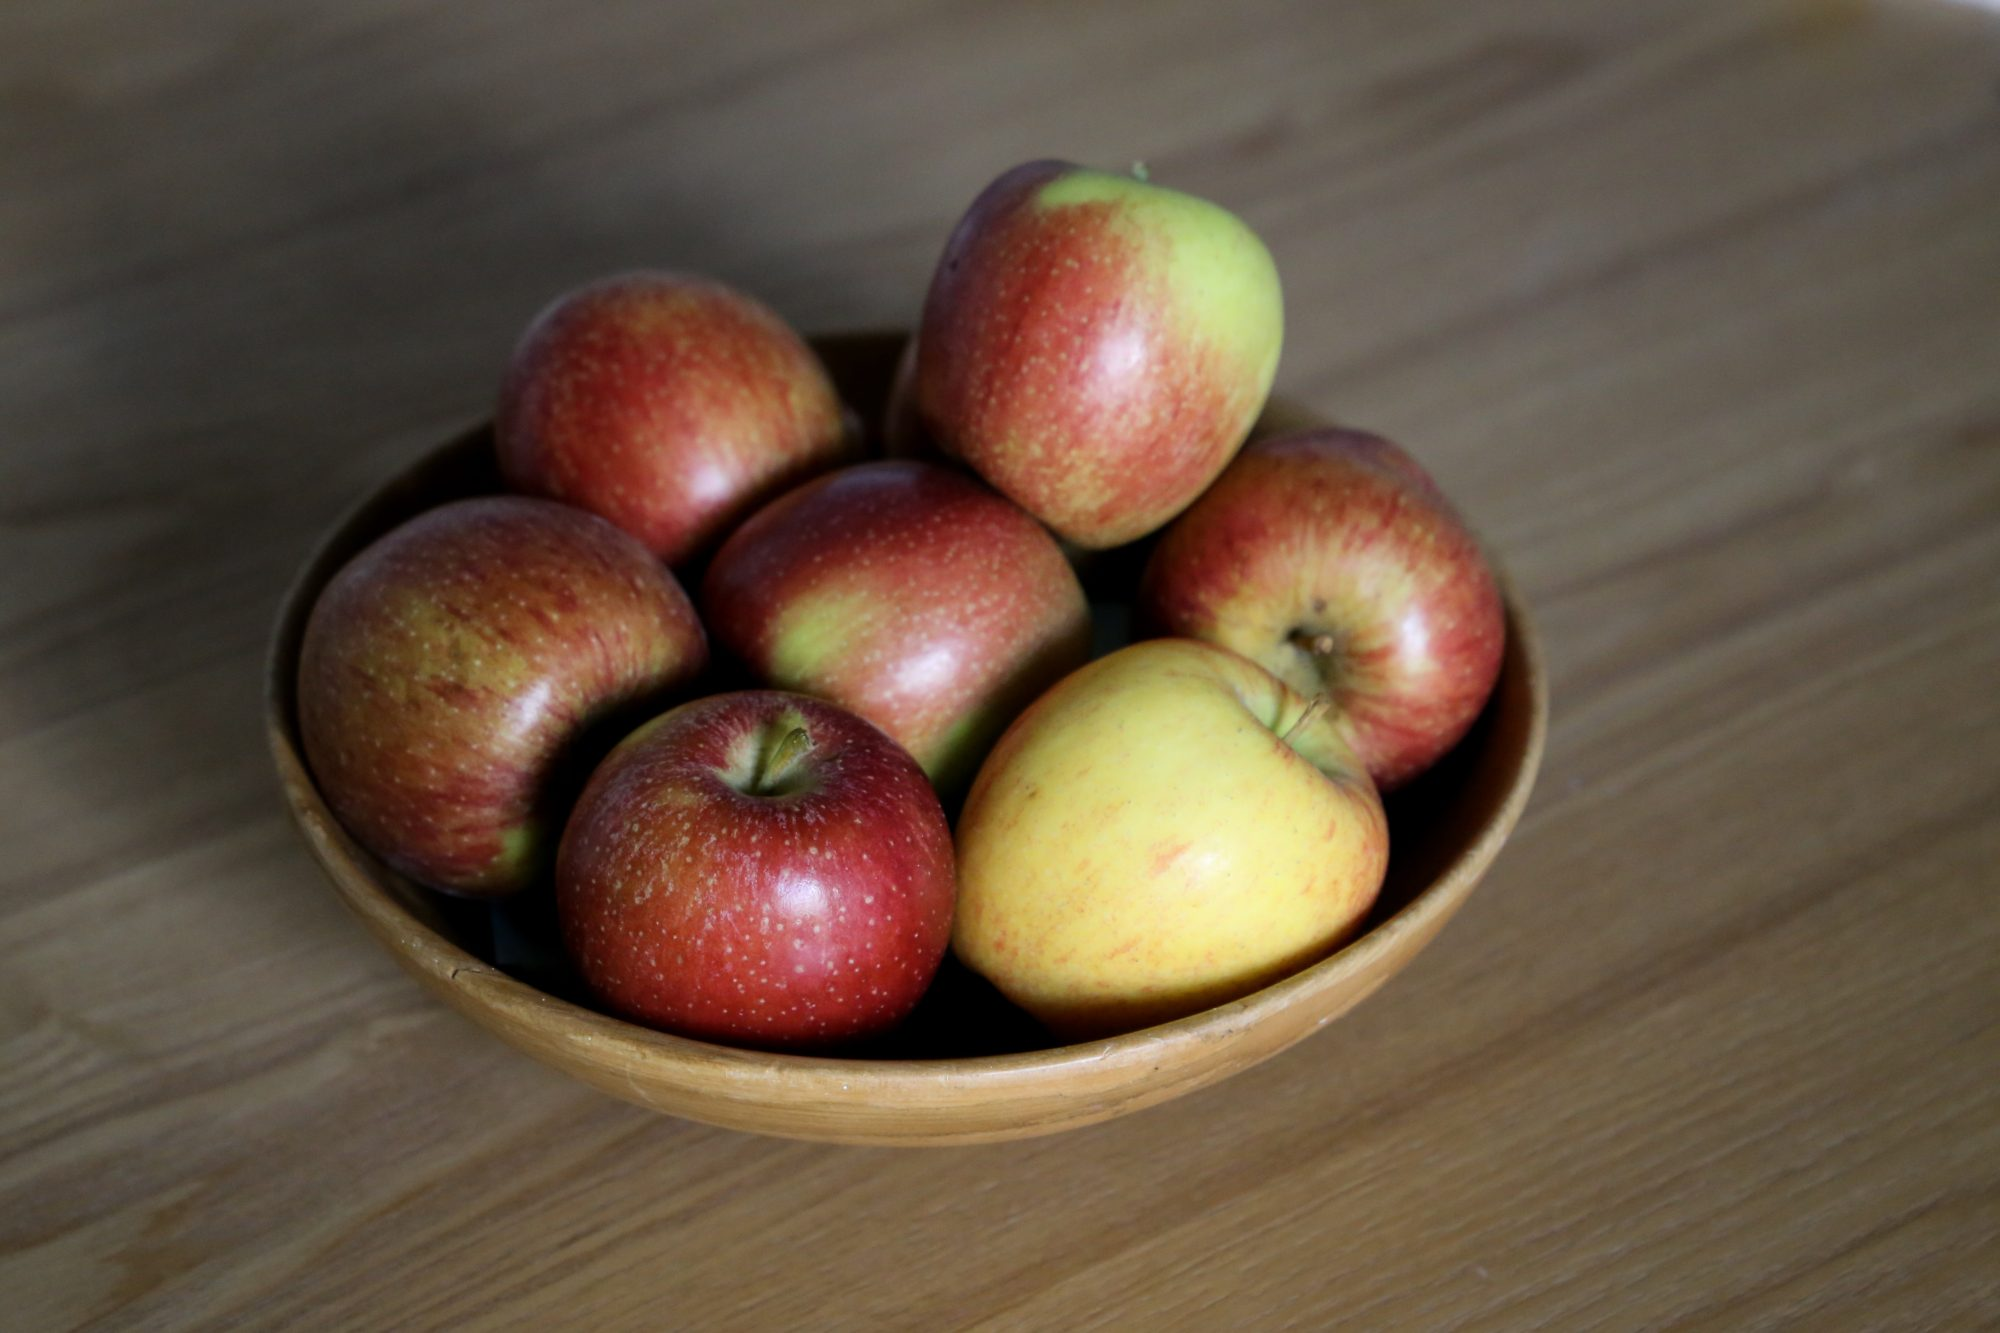 Apples in bowl Getty 6/12/20